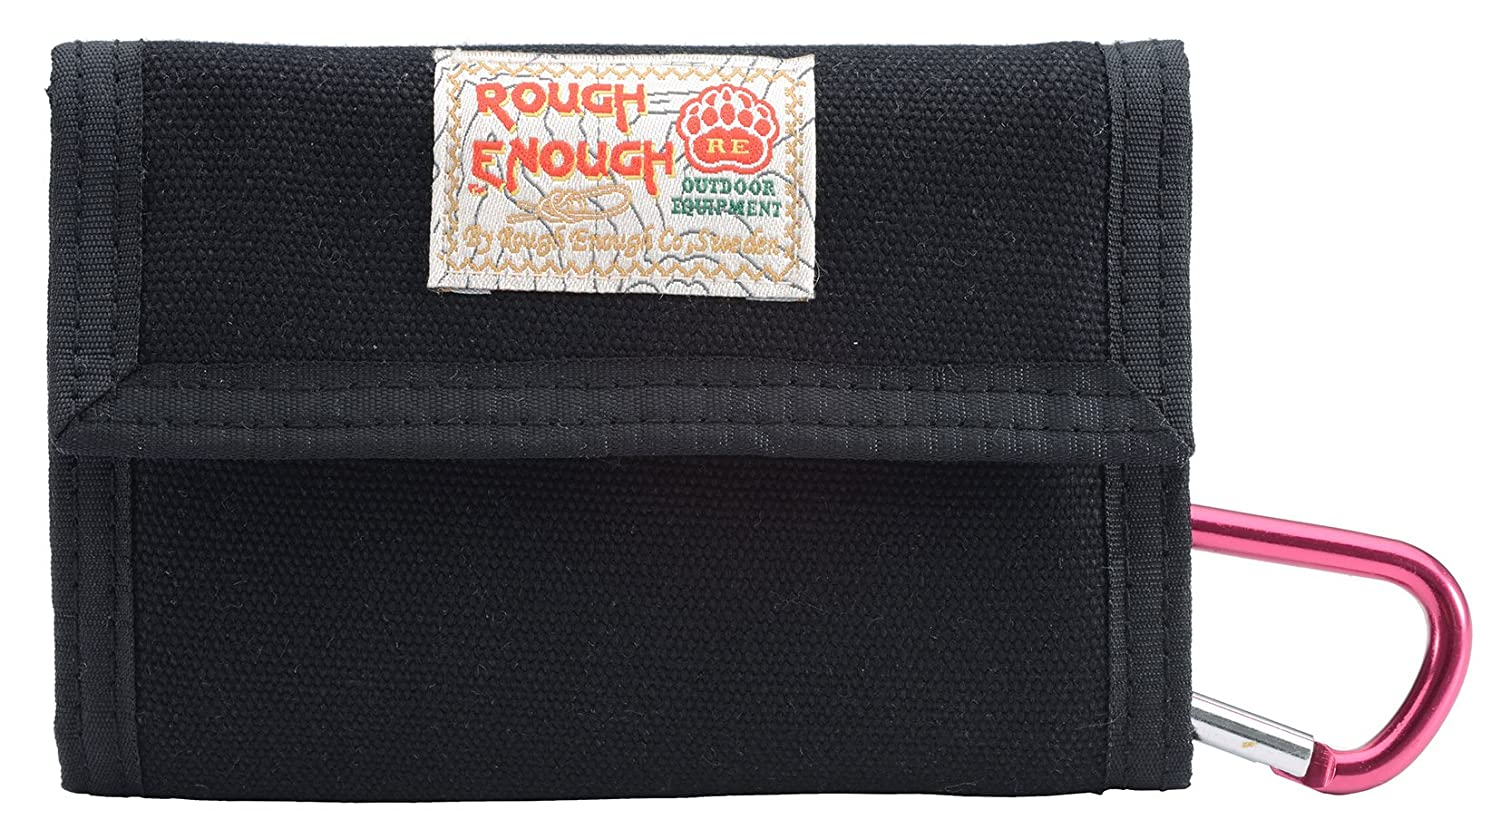 Rough Enough Classic Stylish Vintage Fancy Heavy Canvas Wallet For Coins Purse Holder Organizer Case With Zippered Pockets Trifold Coin Pocket ROUGH ENOUGH INC. RE8002-4-6